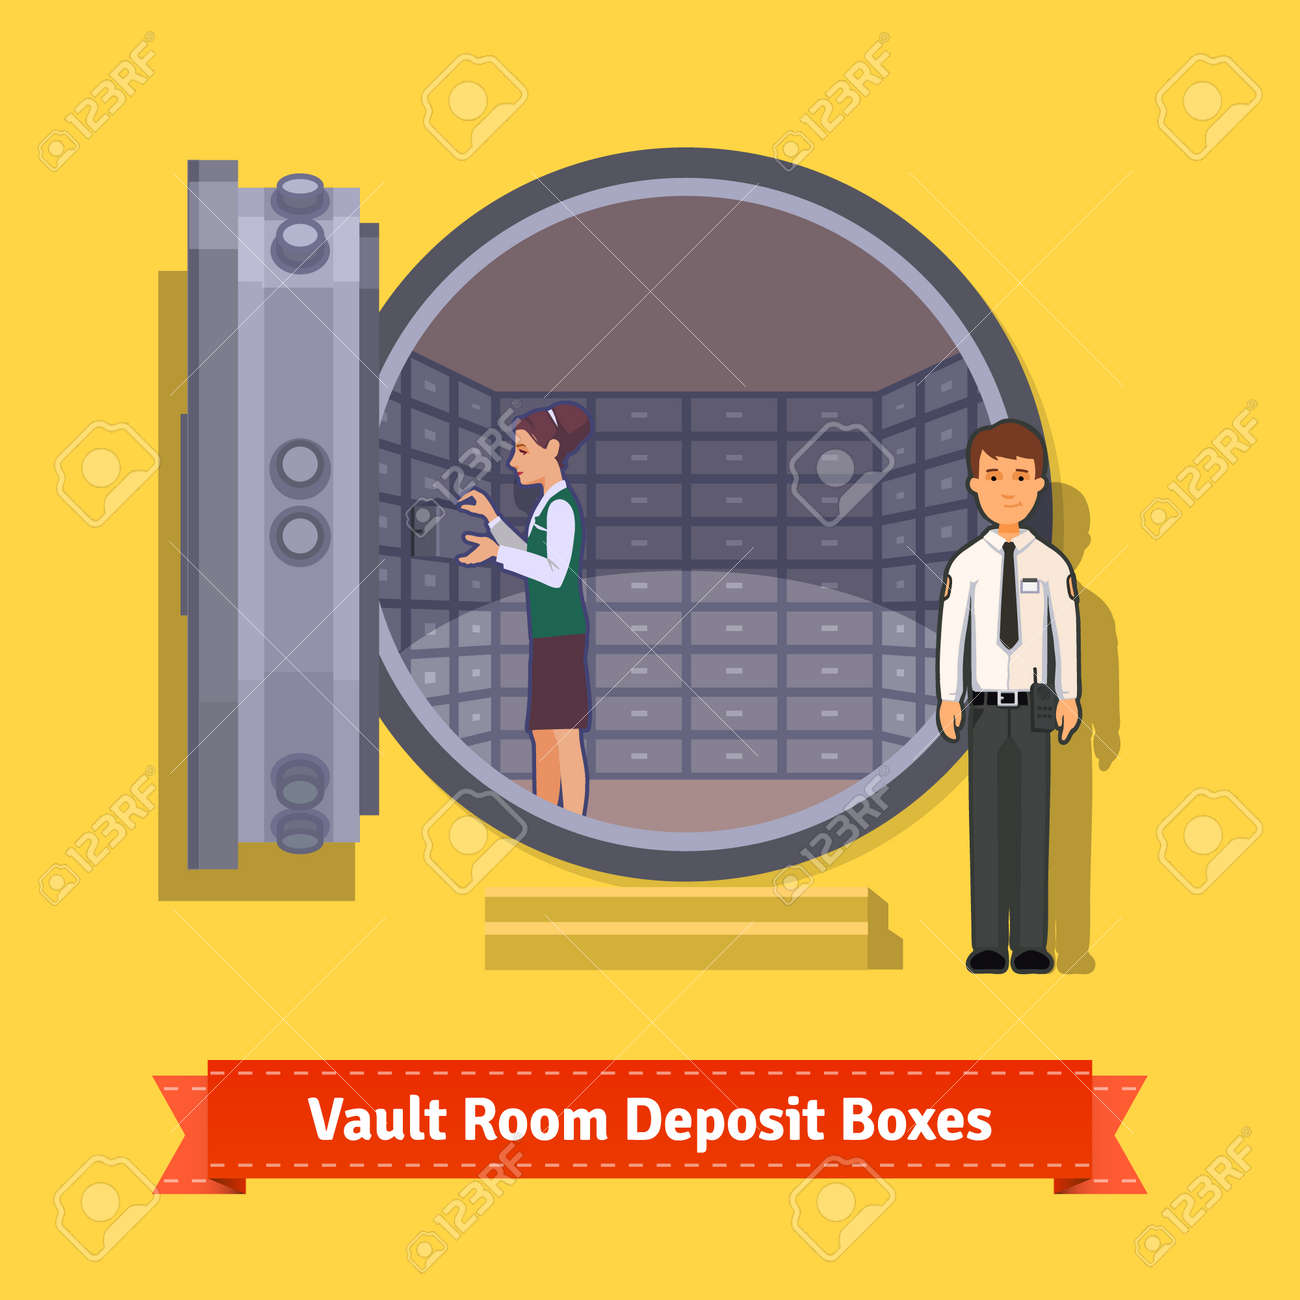 Bank vault room with a safe deposit boxes, clerk and guard. Flat style illustration. EPS 10 vector. - 51137215